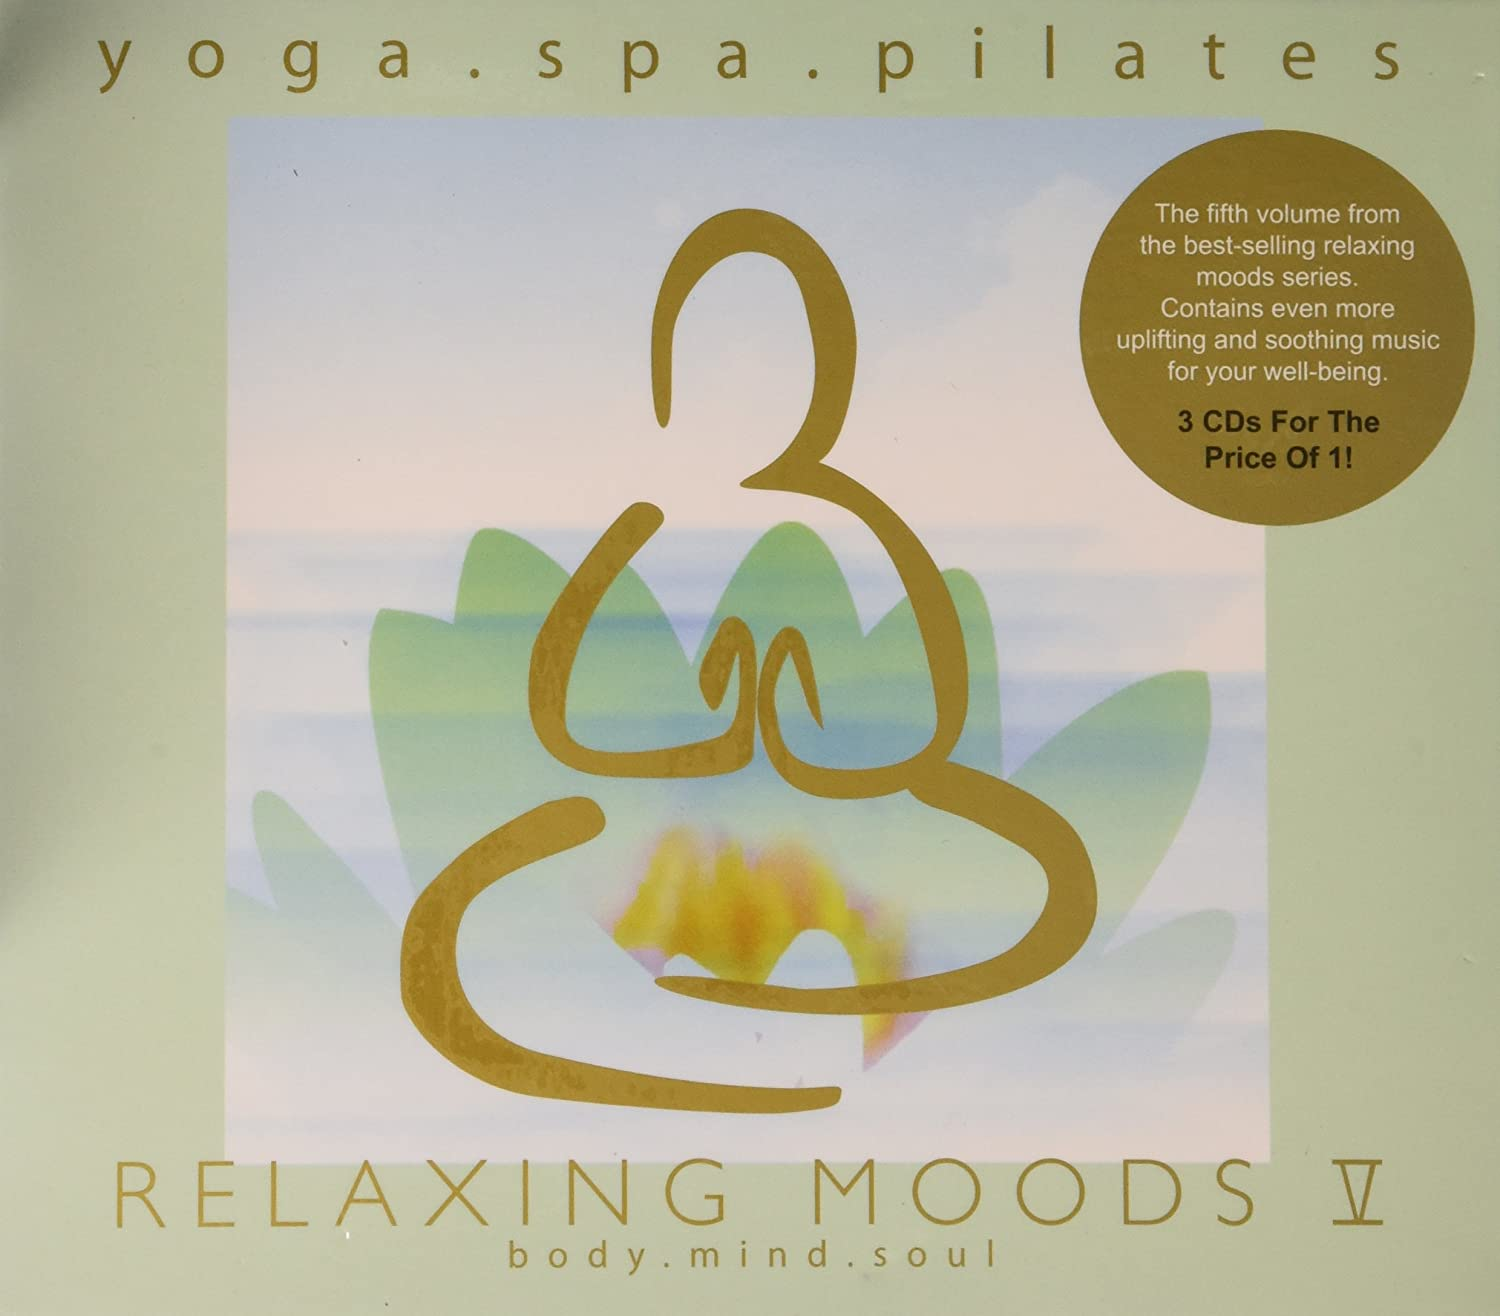 Yoga Spa Pilates: Relaxing Moods V: Amazon.es: Música